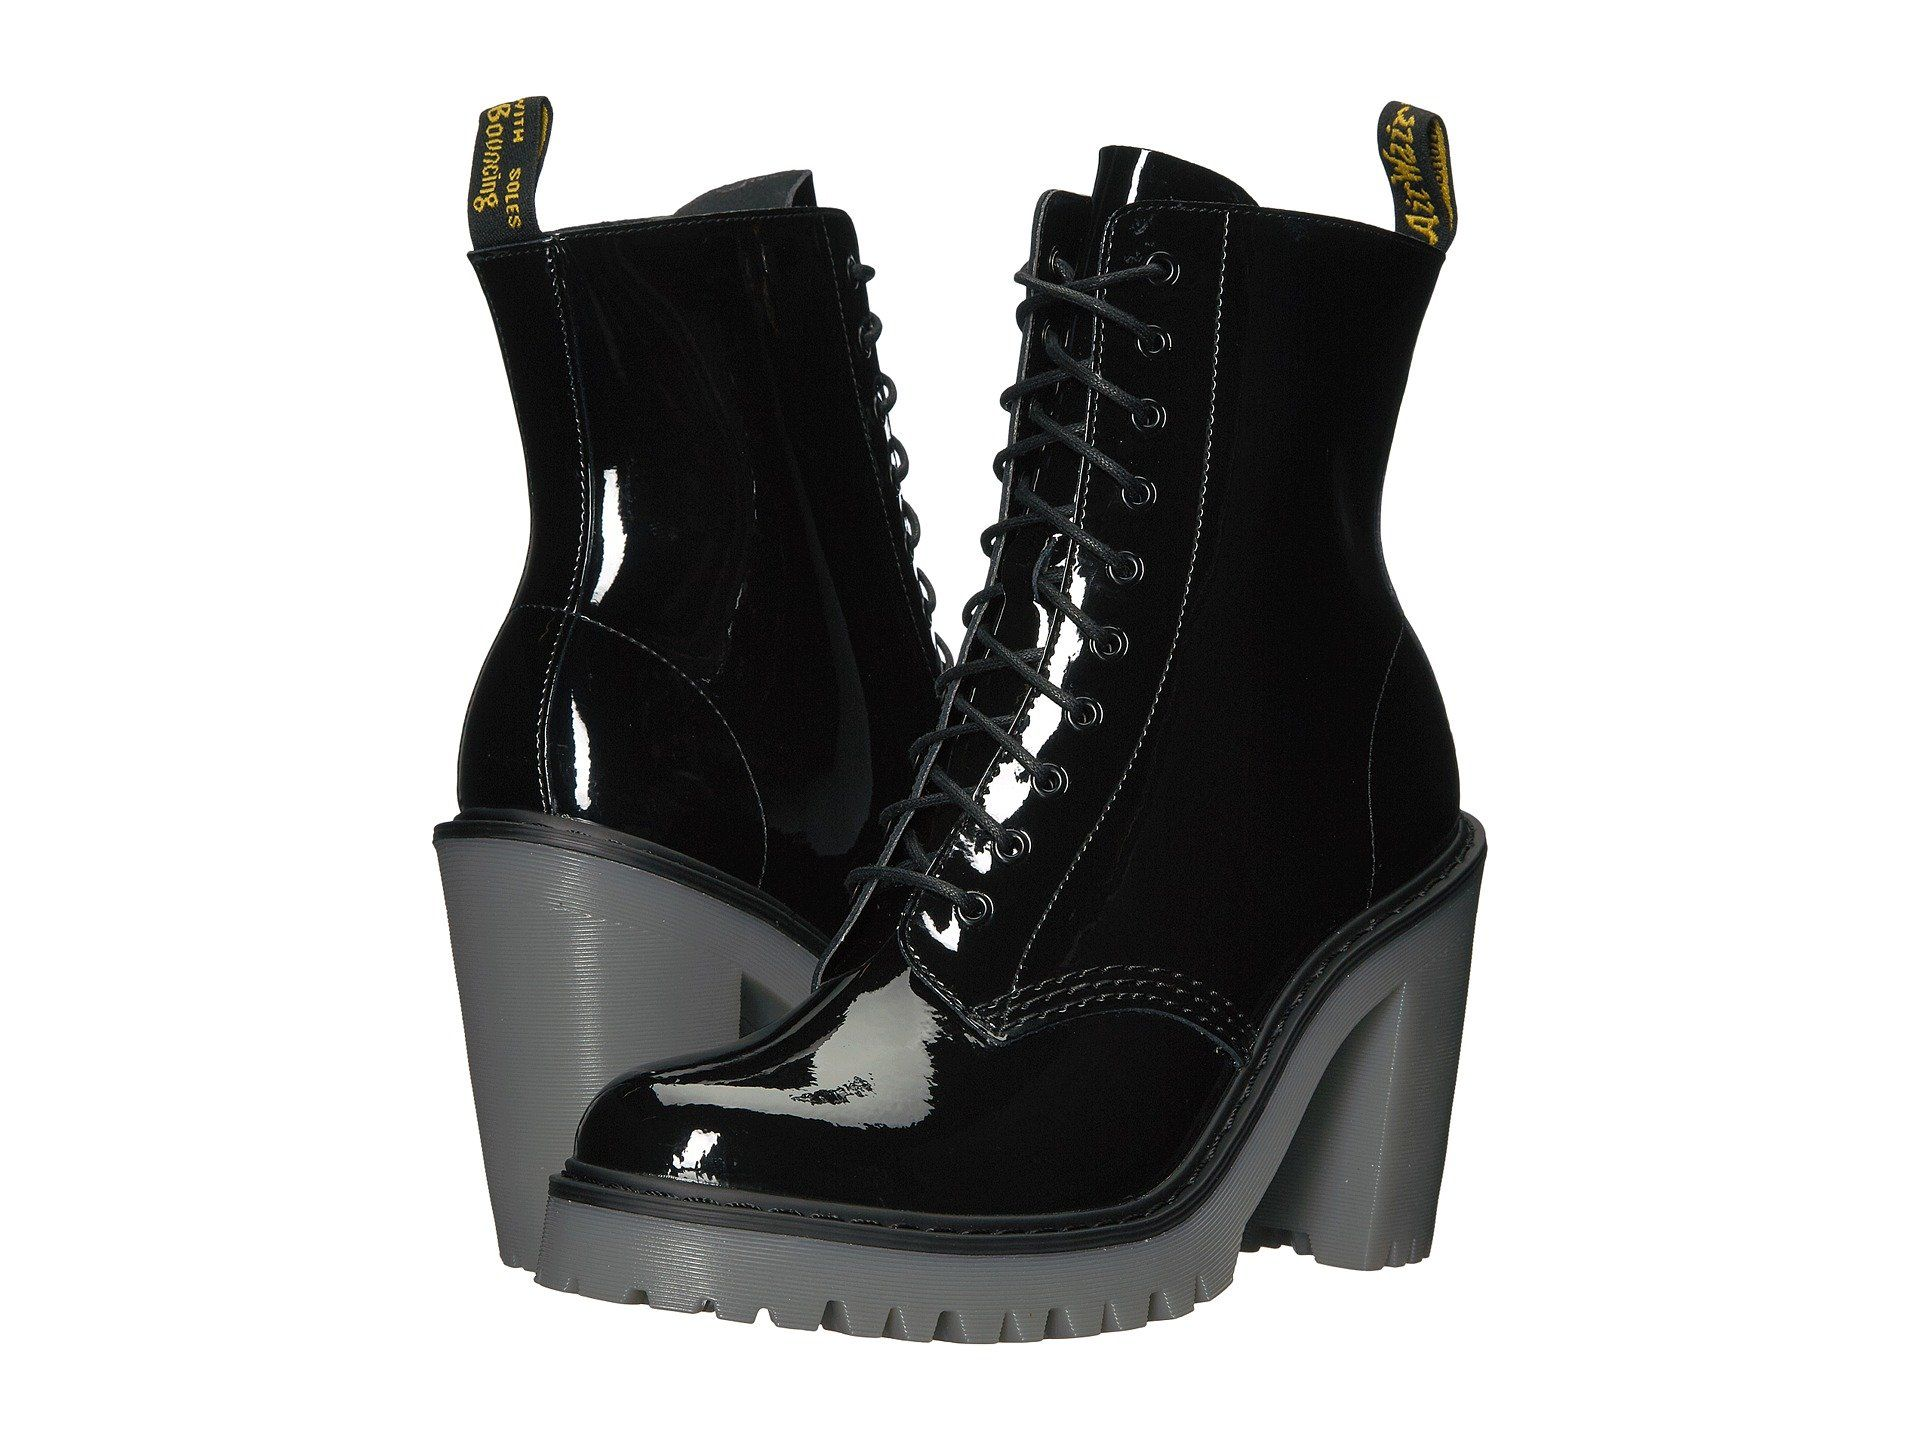 patent leather boots, Black high heel boots